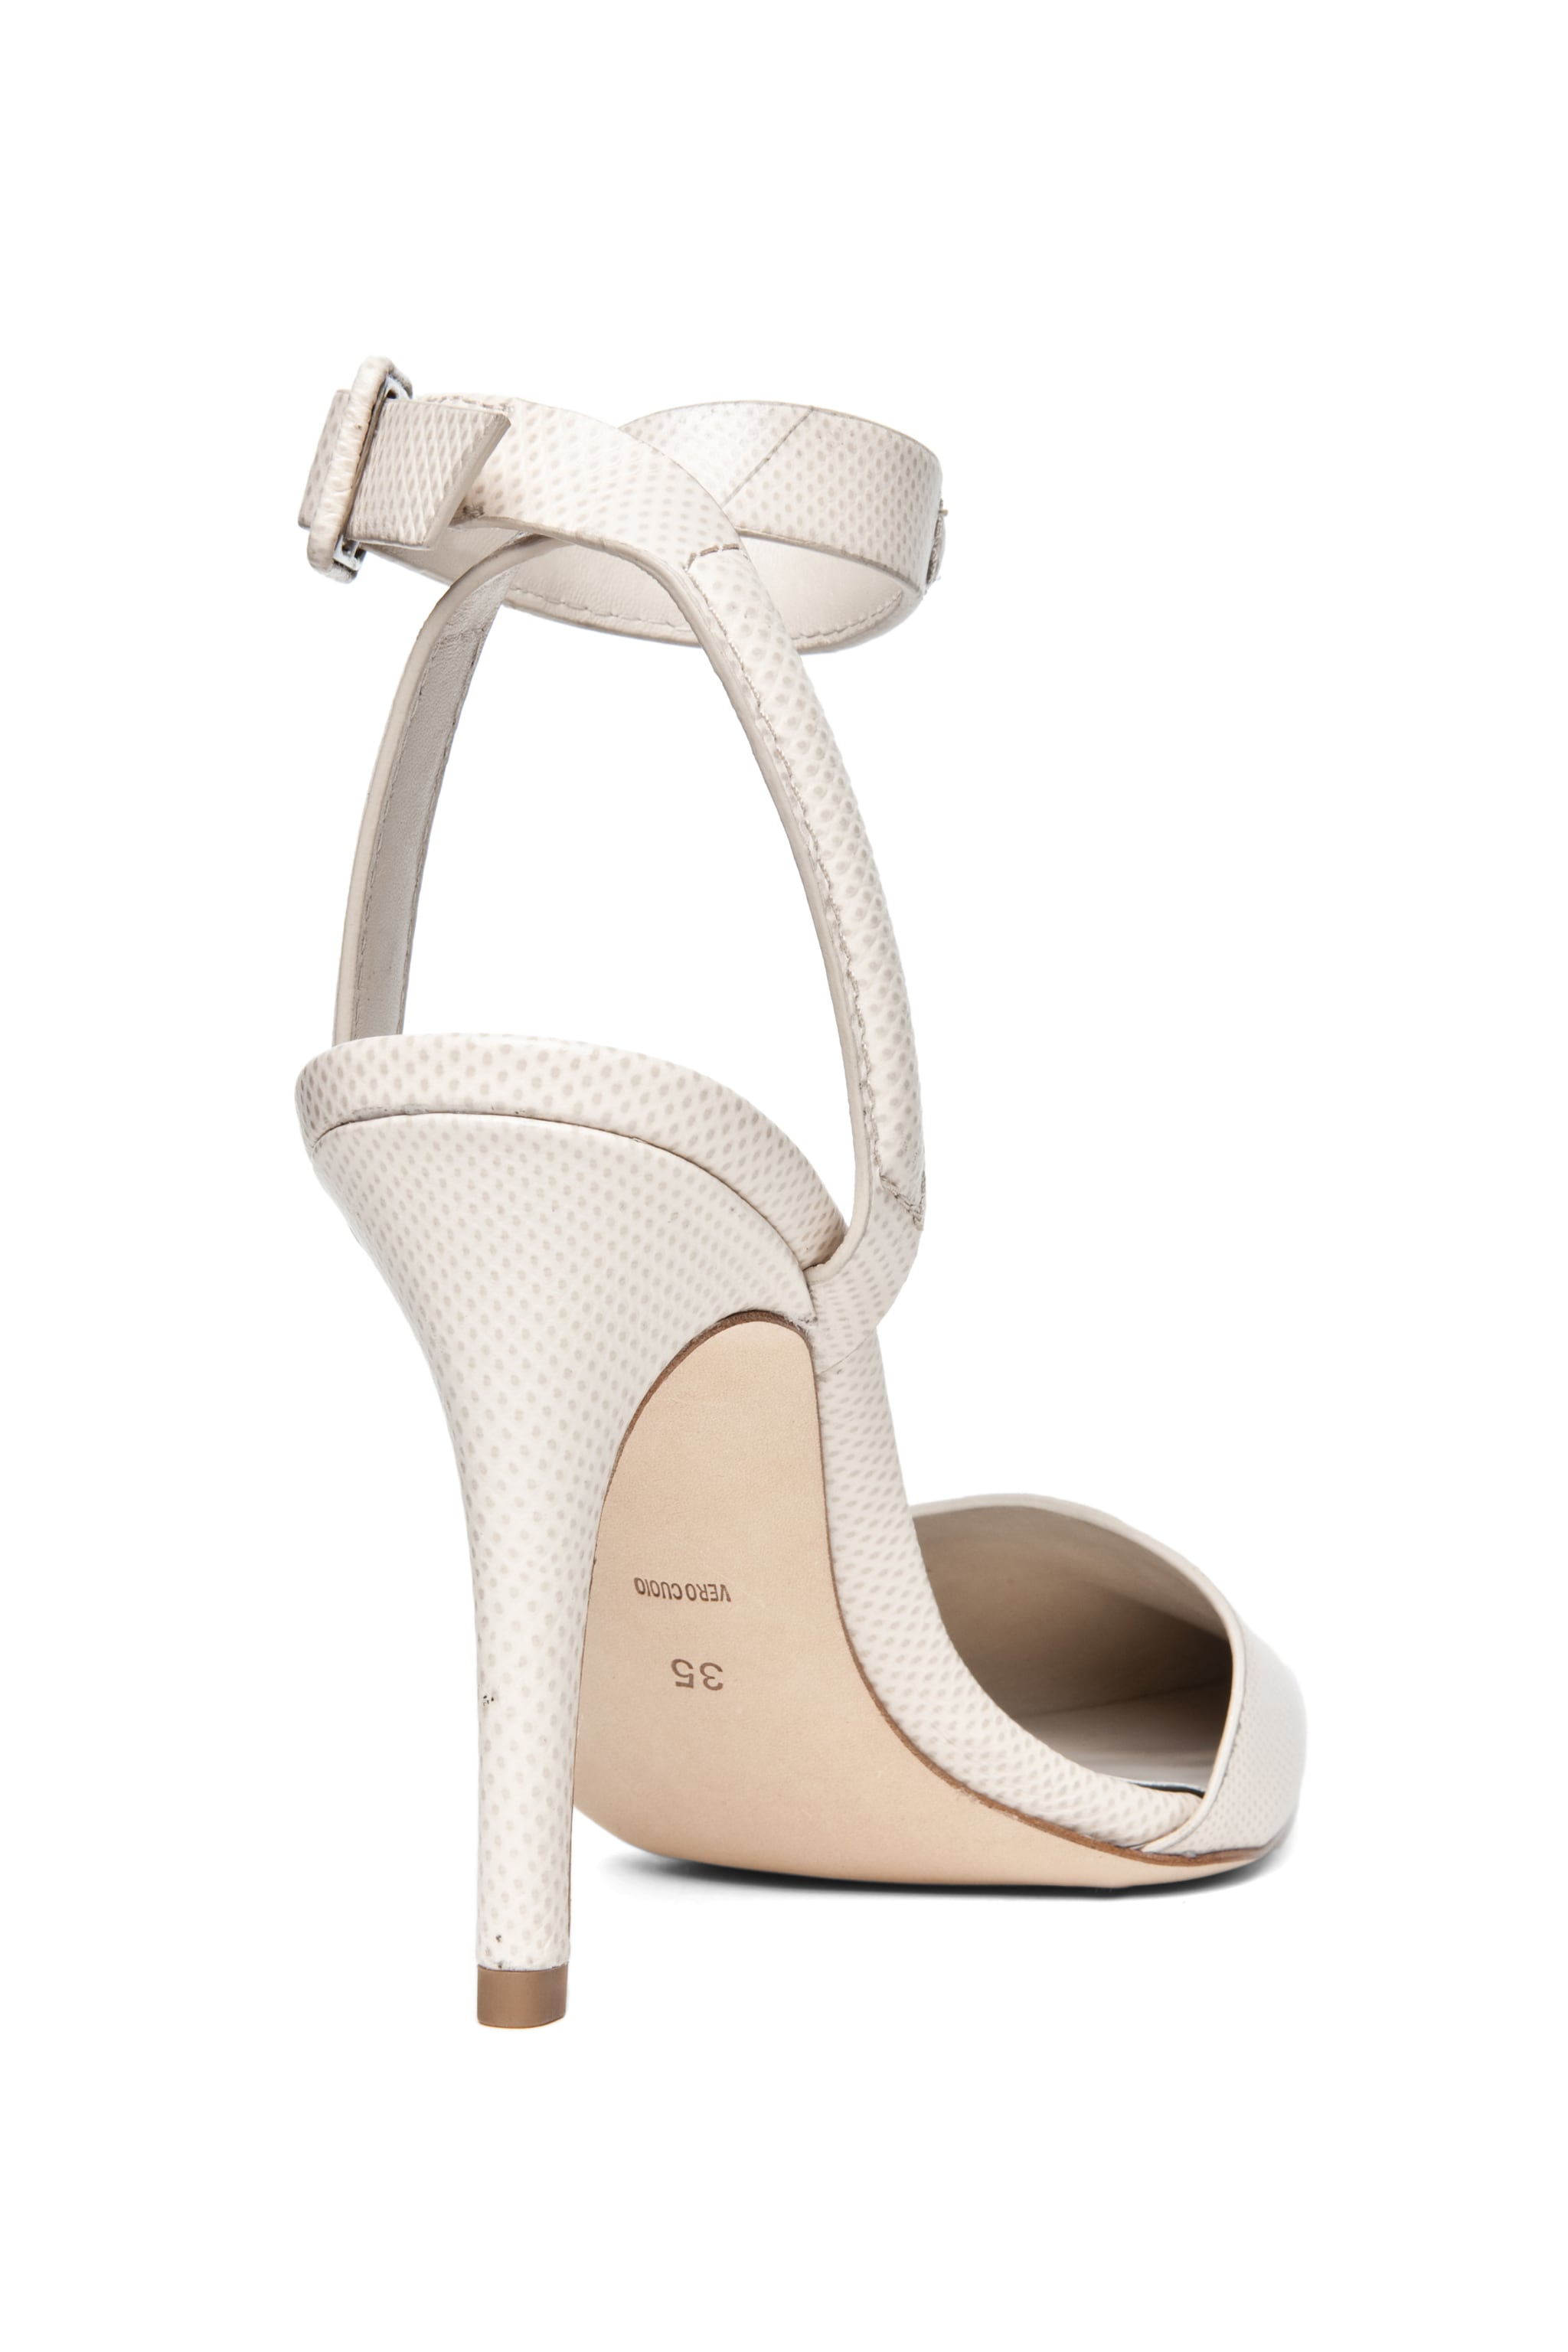 Image 3 of Alexander Wang Lovisa Python Embossed Calfskin Leather Pump in Bandage